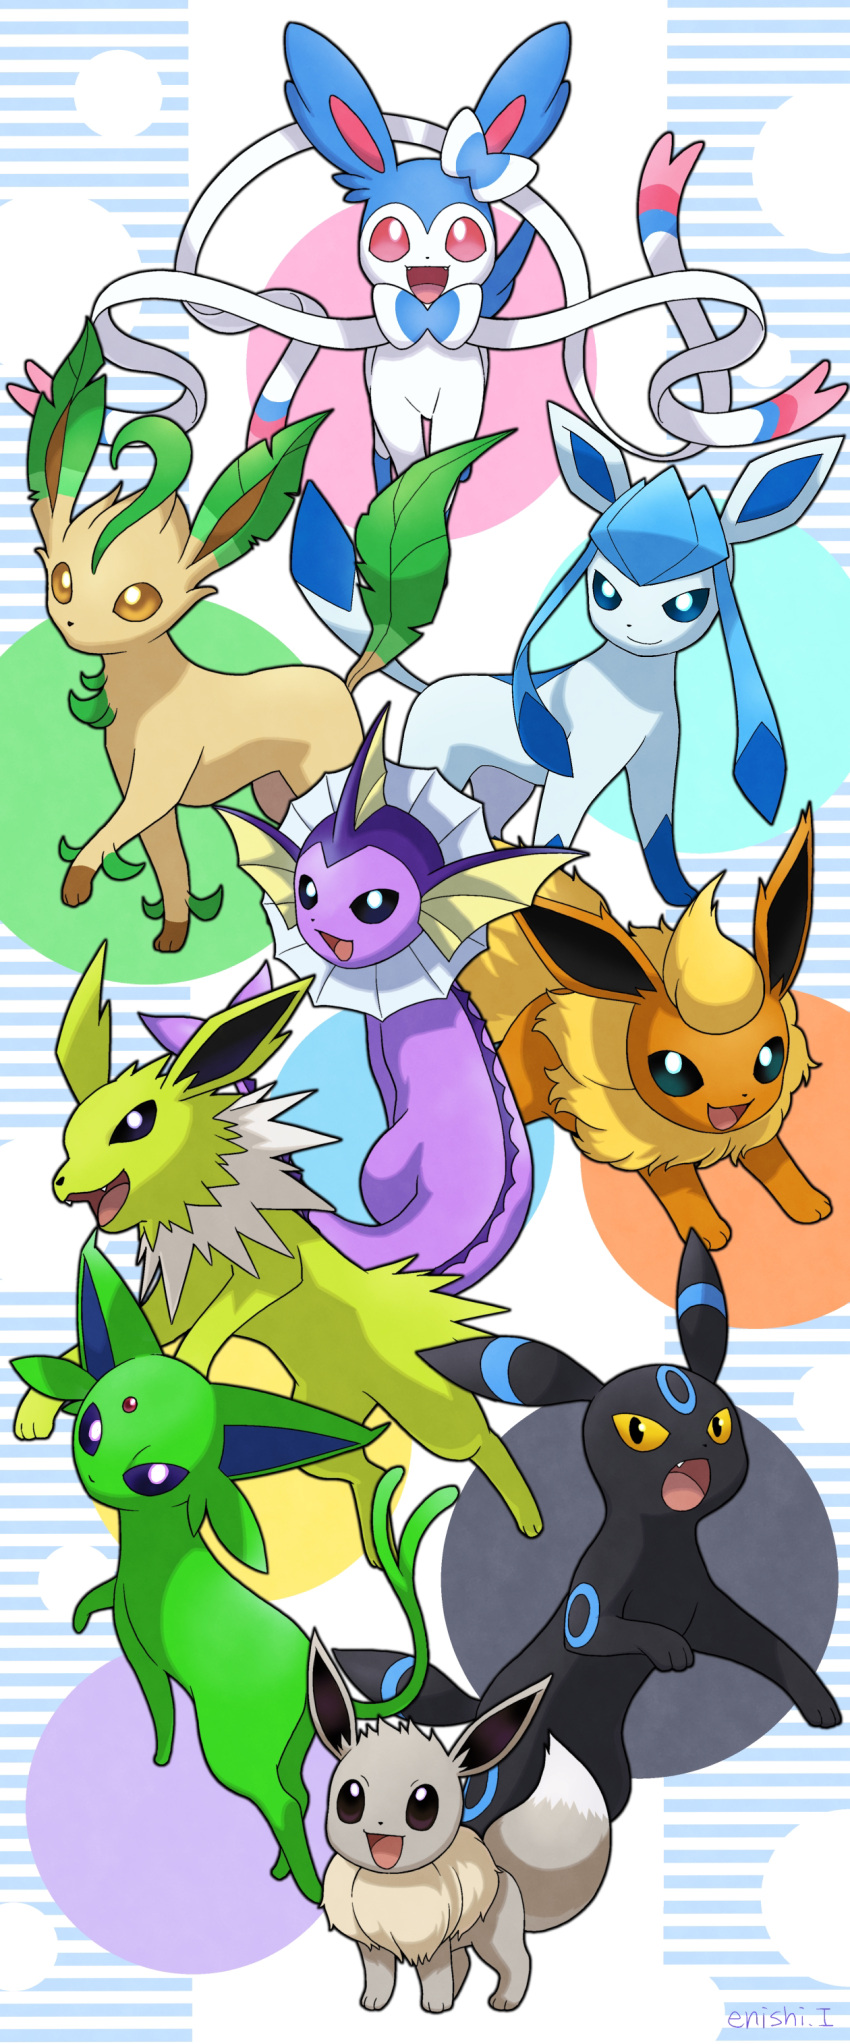 :d absurdres alternate_color black_eyes blue_eyes brown_eyes closed_mouth commentary_request creature eevee enishi_(menkura-rin10) espeon fang flareon gen_1_pokemon gen_2_pokemon gen_4_pokemon gen_6_pokemon glaceon highres jolteon leafeon looking_at_viewer no_humans open_mouth pokemon pokemon_(creature) shiny_pokemon simple_background smile striped striped_background sylveon umbreon vaporeon violet_eyes white_background yellow_eyes